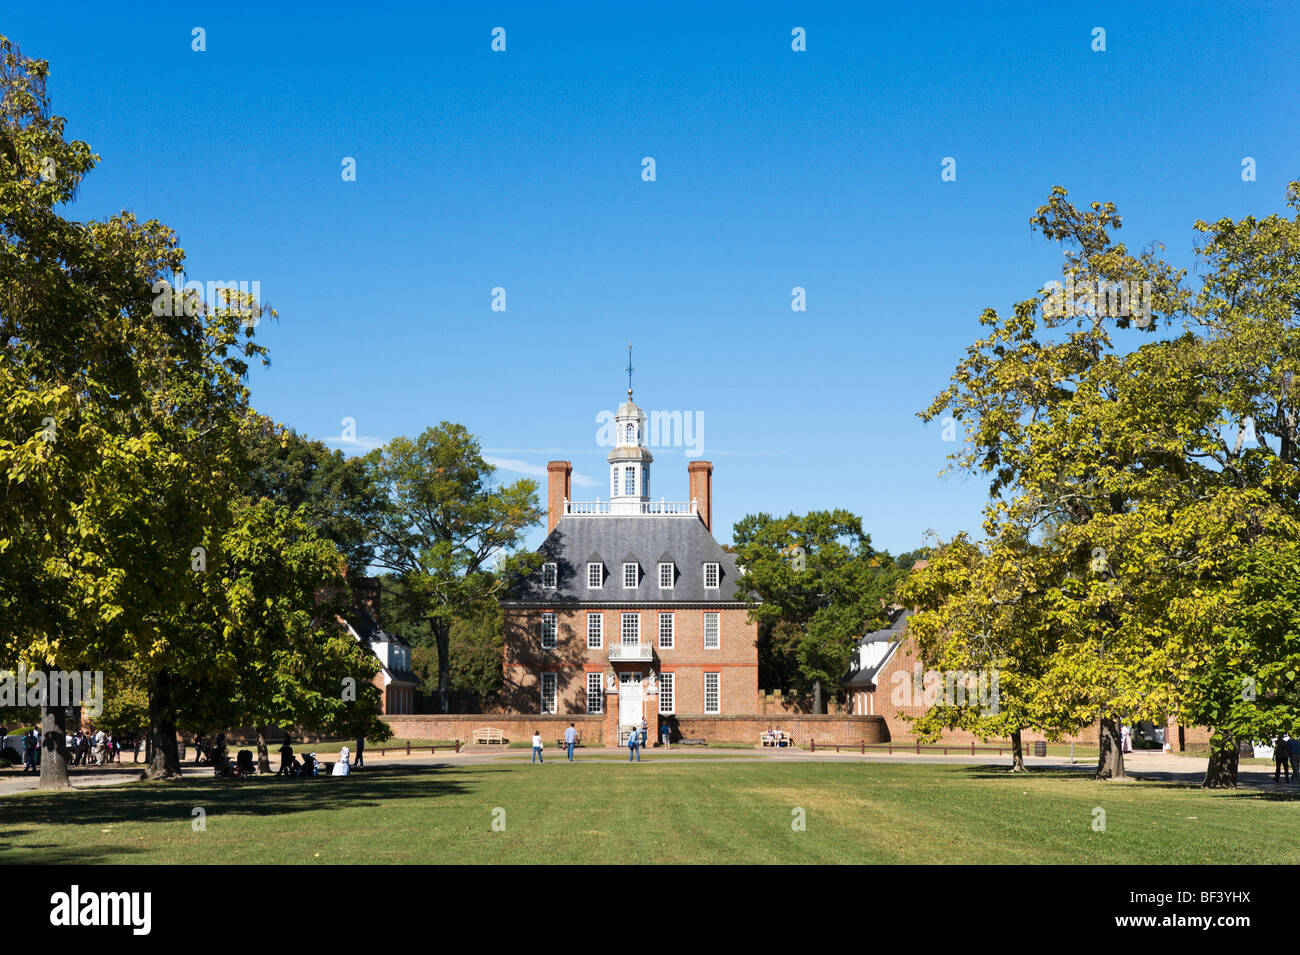 The Governor's Palace and Palace Green, Colonial Williamsburg,Virginia, USA Stock Photo